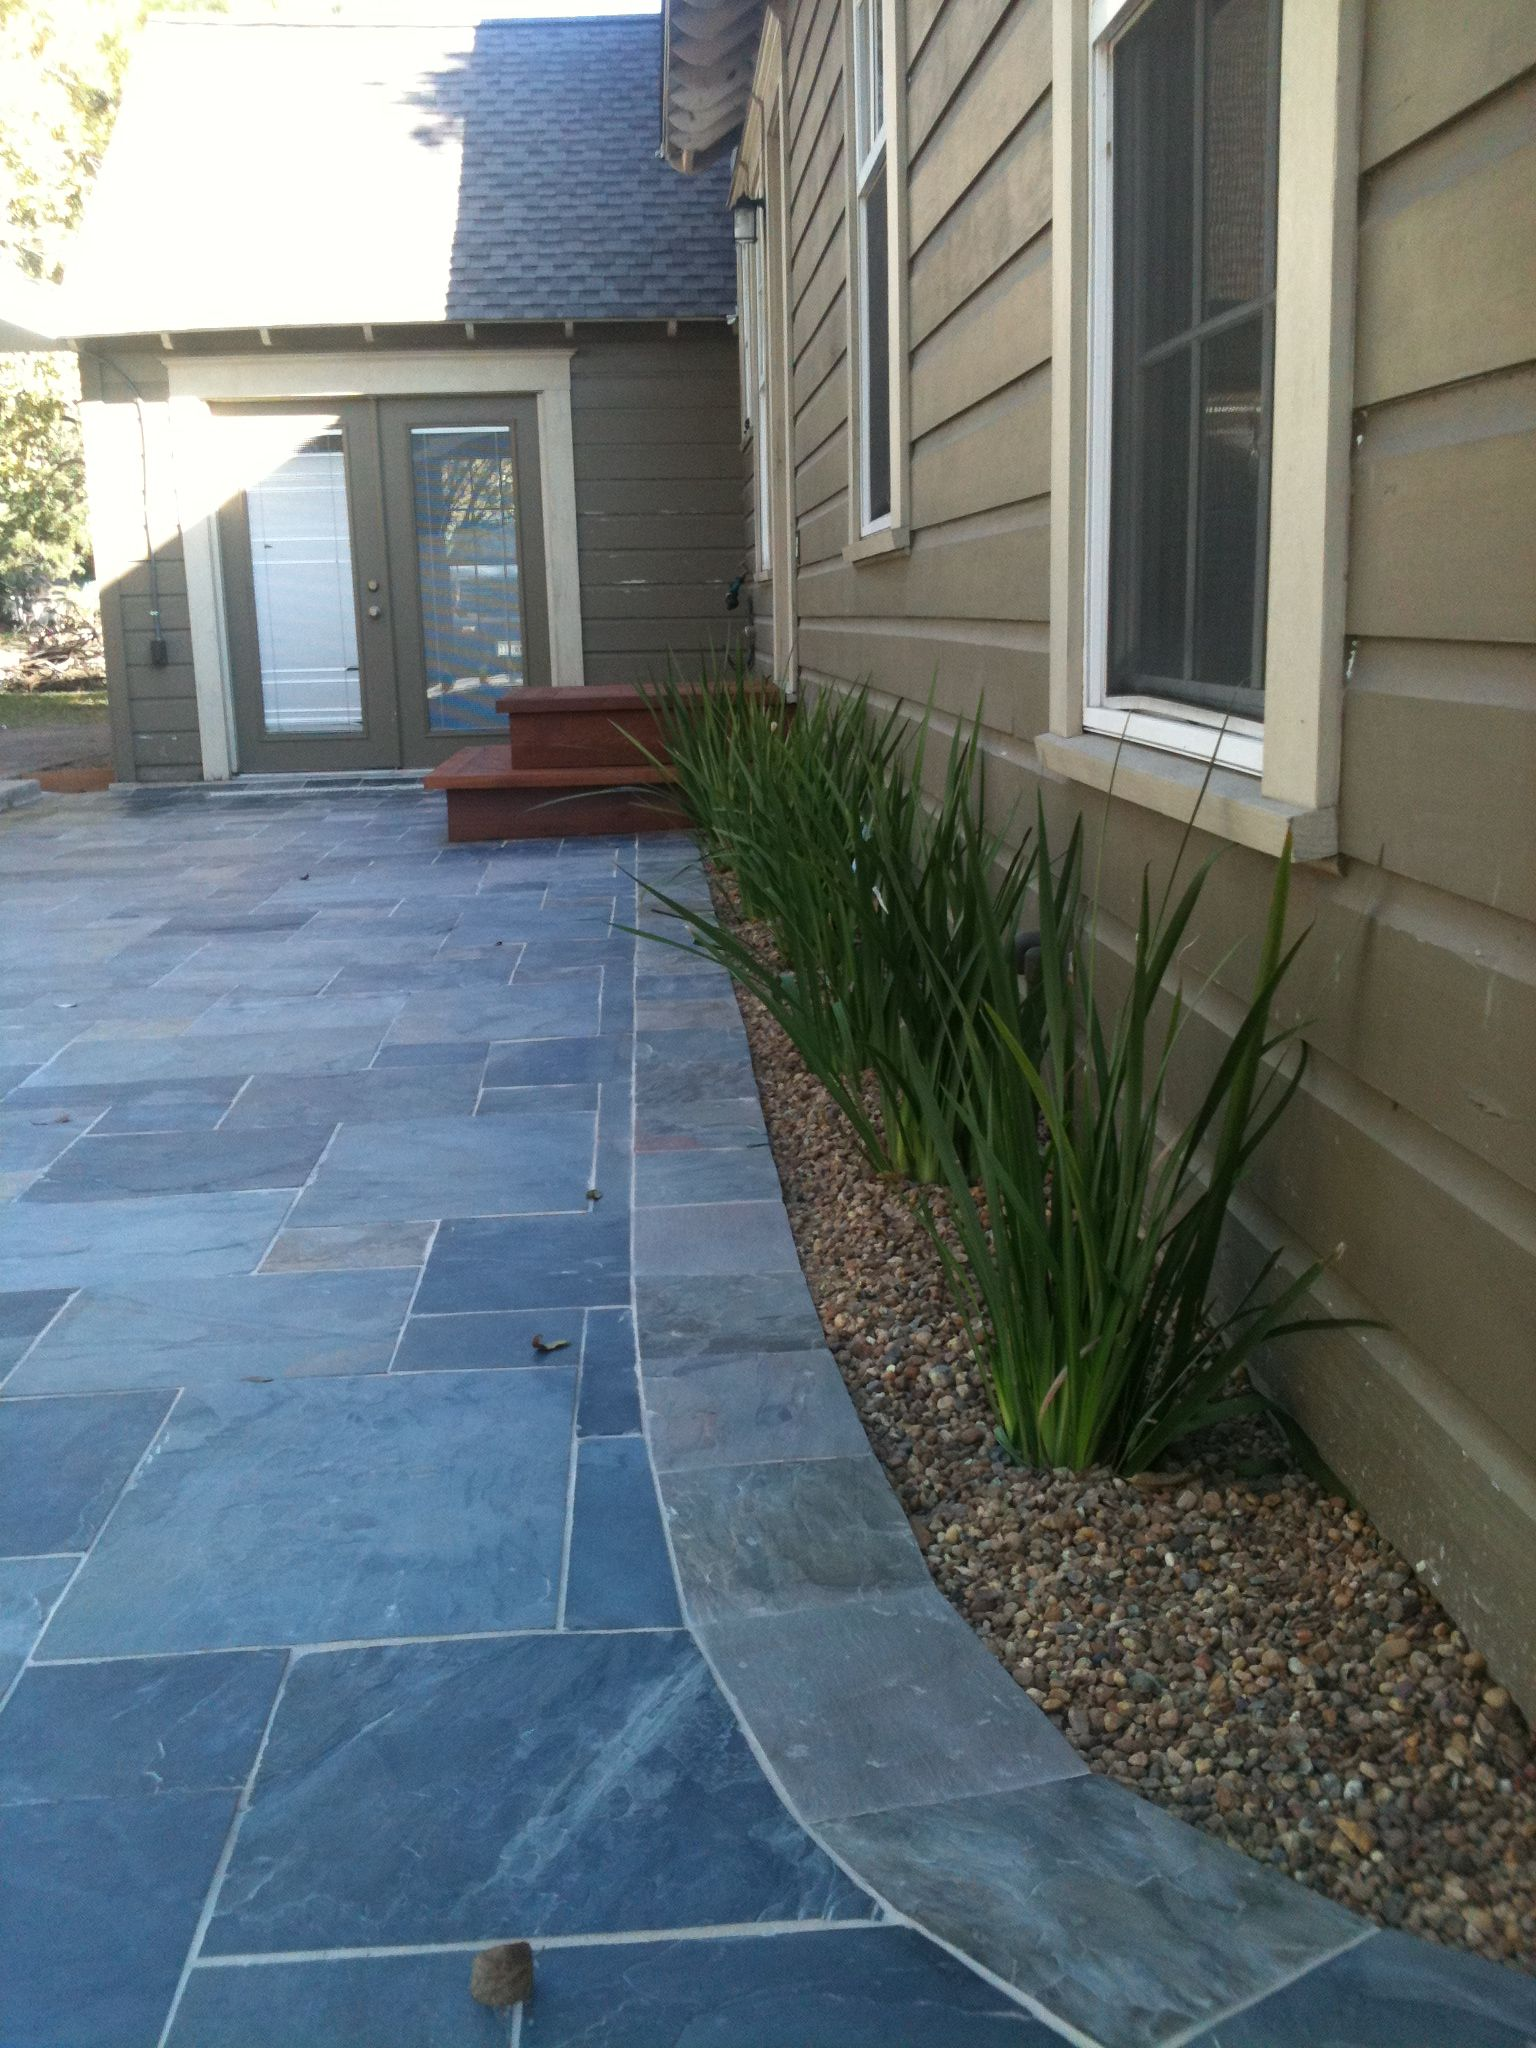 Random Slate Tile Patio With Curved Slate Border By The Western Patio Company In Spring Texas Western Red Cedar Steps Lead To Back Door Patio Maison Jardins